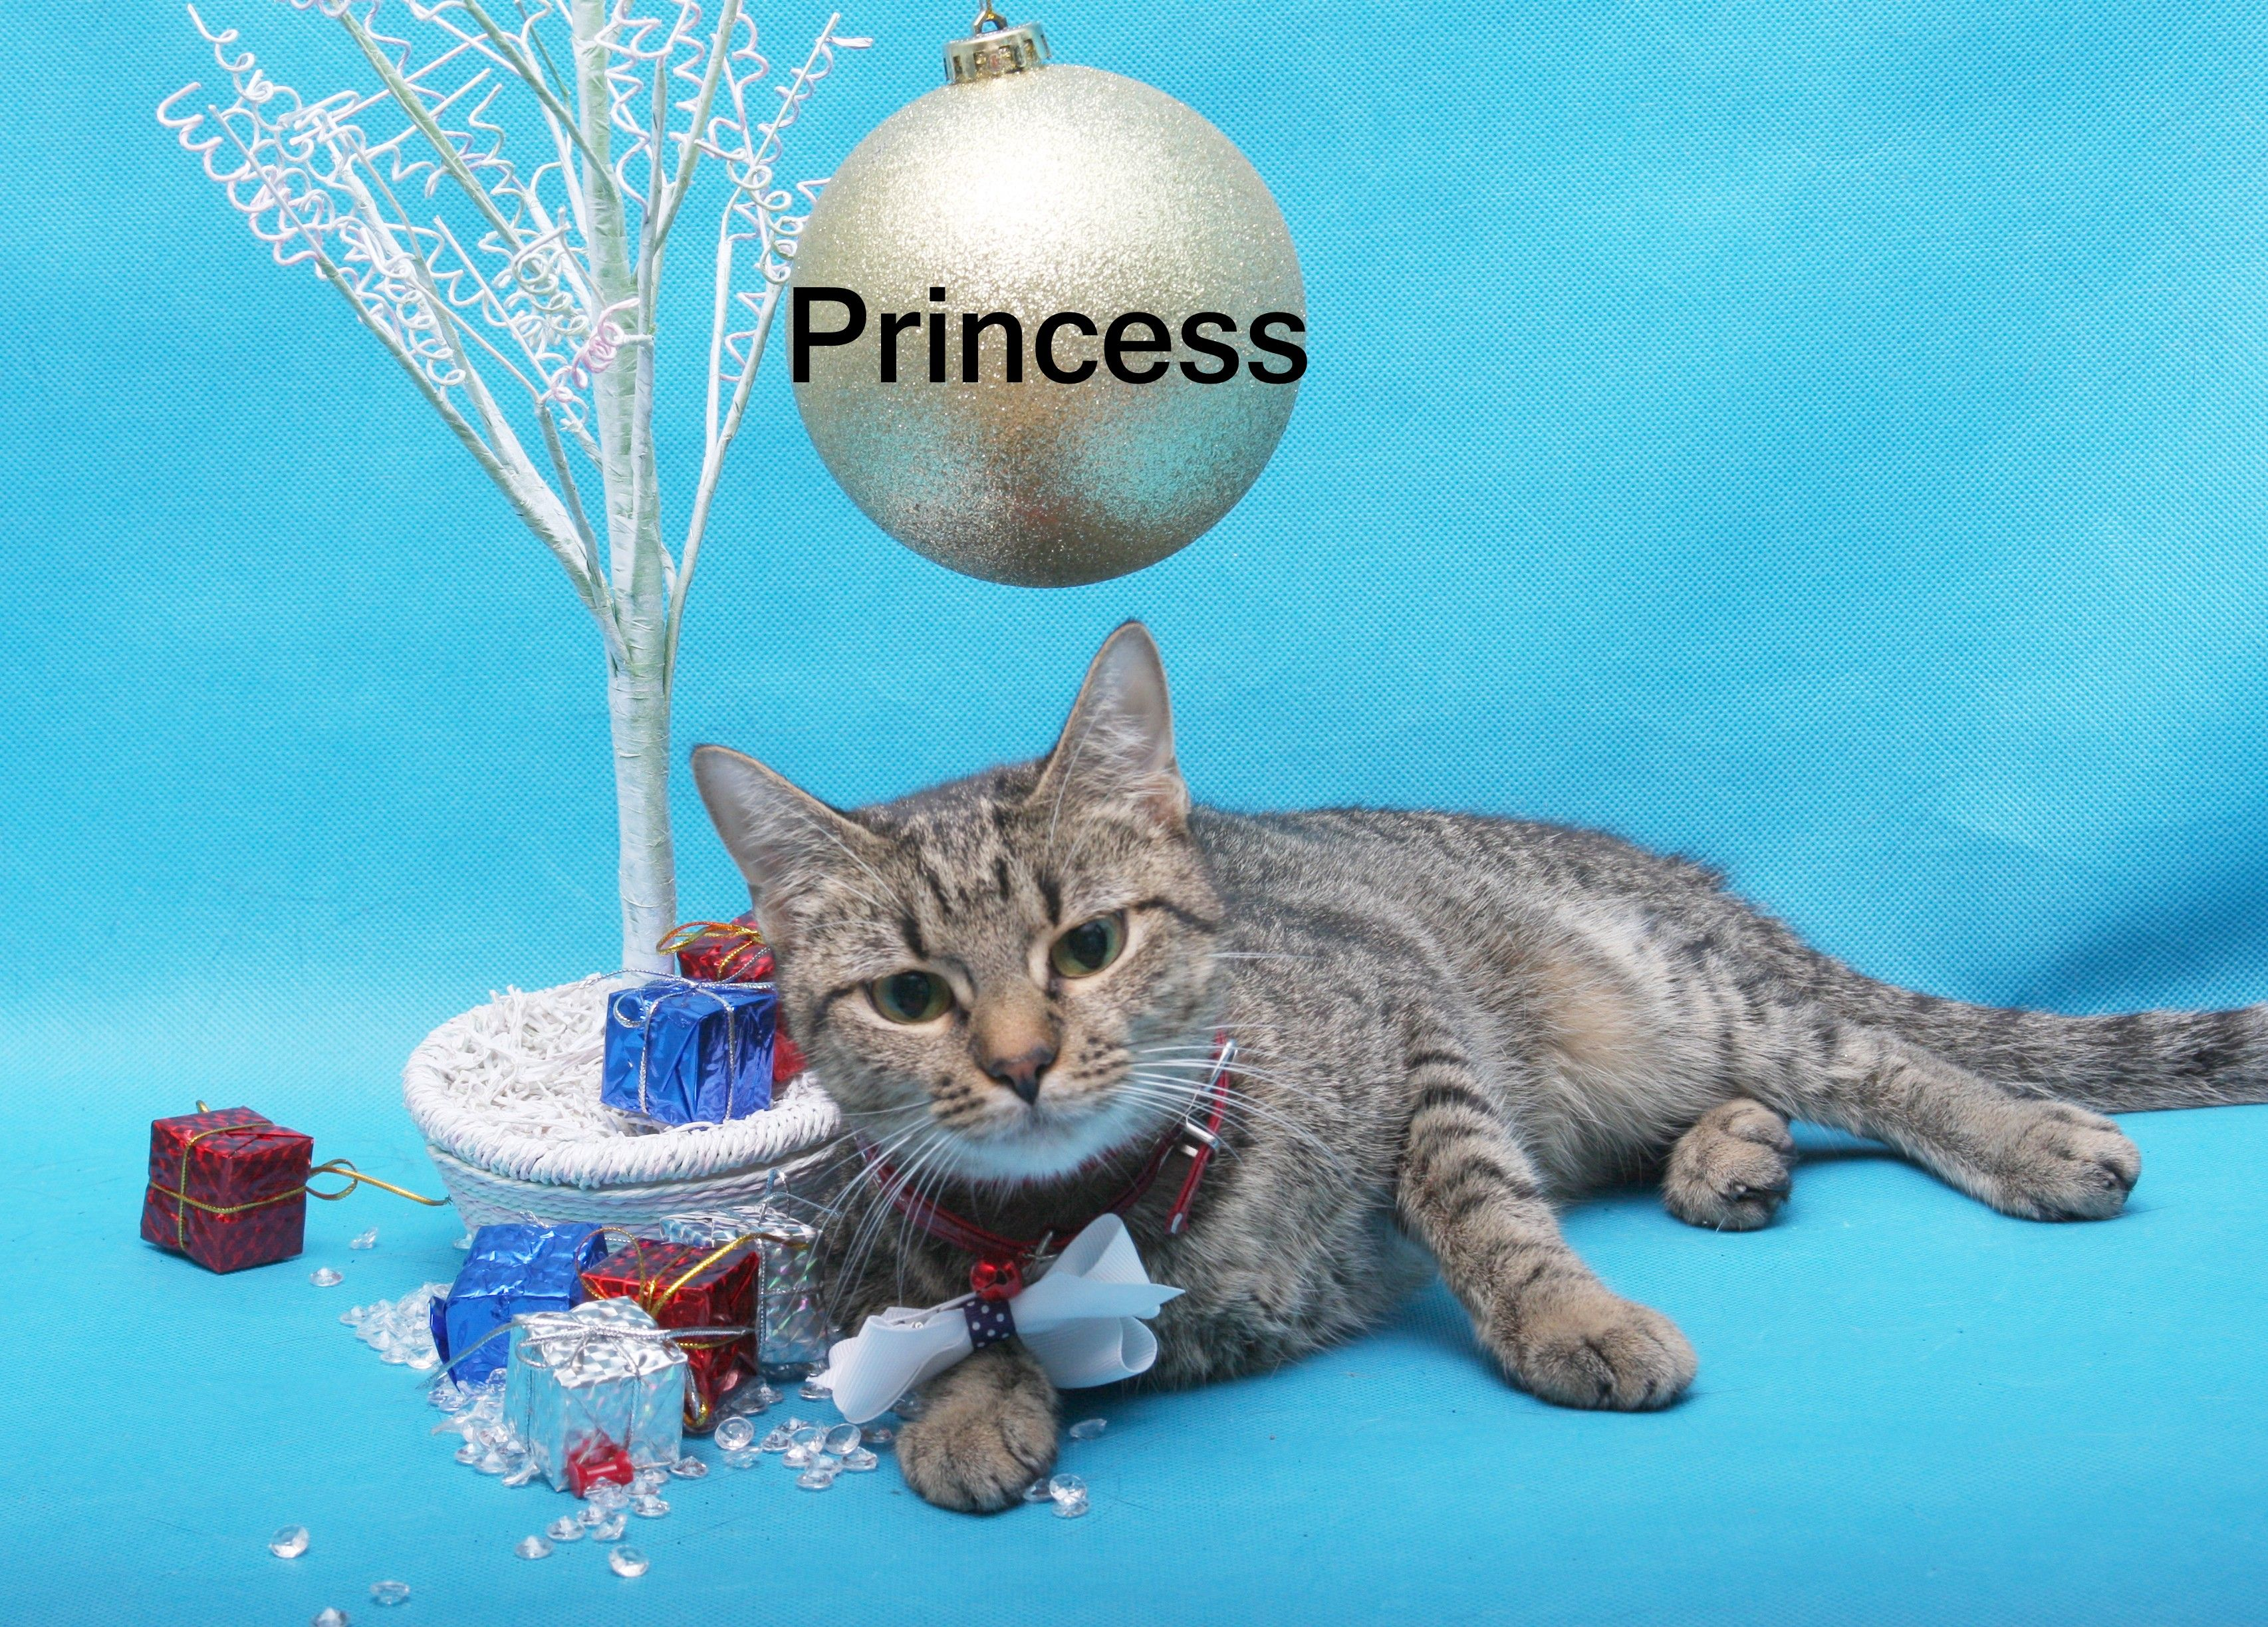 Princess is Friday's #FestiveFeline! All #cat adoptions at HHS are just $24 through 12/24!